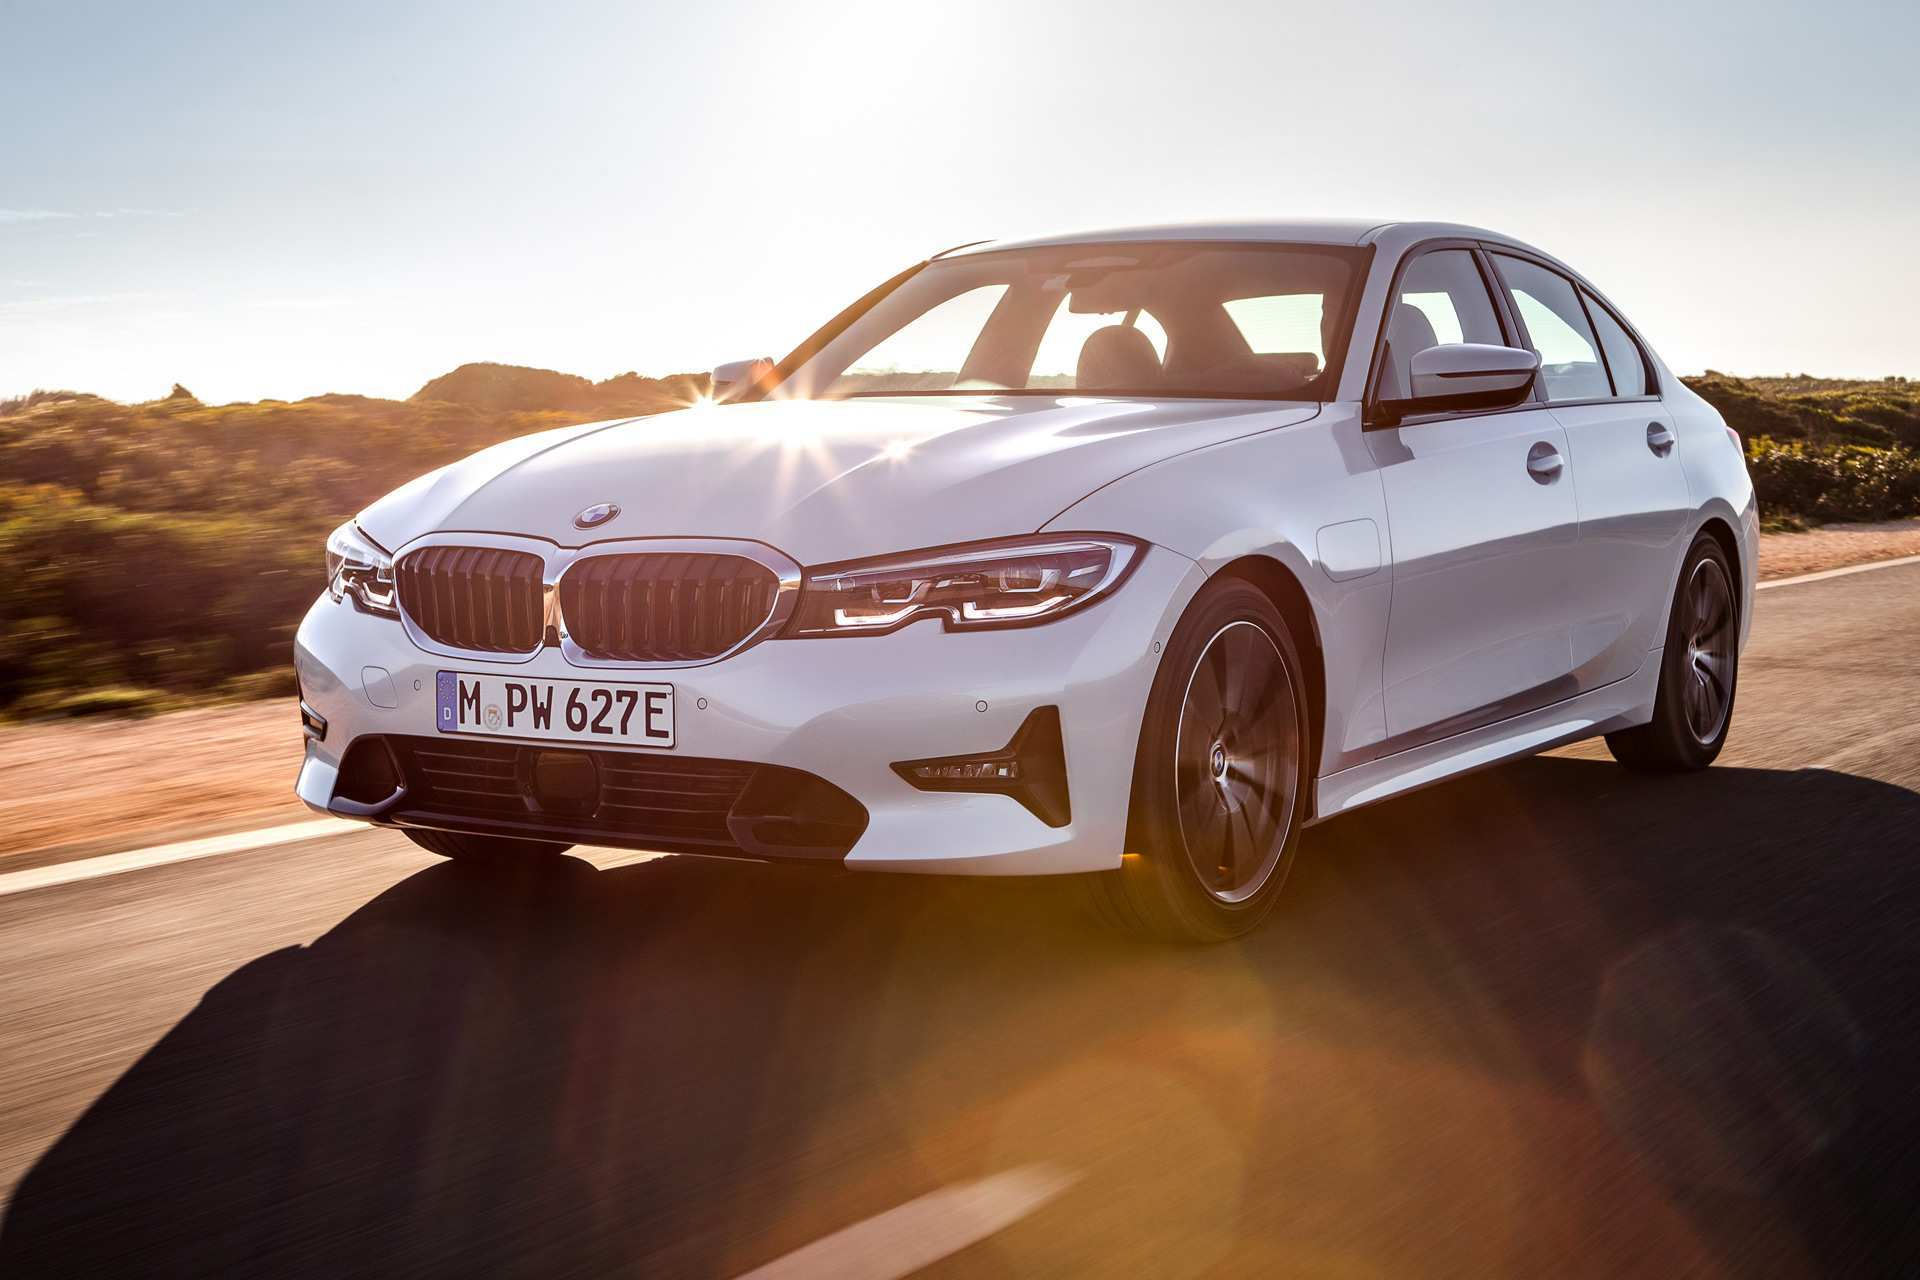 34 The Best 2020 BMW 3 Series Edrive Phev Release Date And Concept